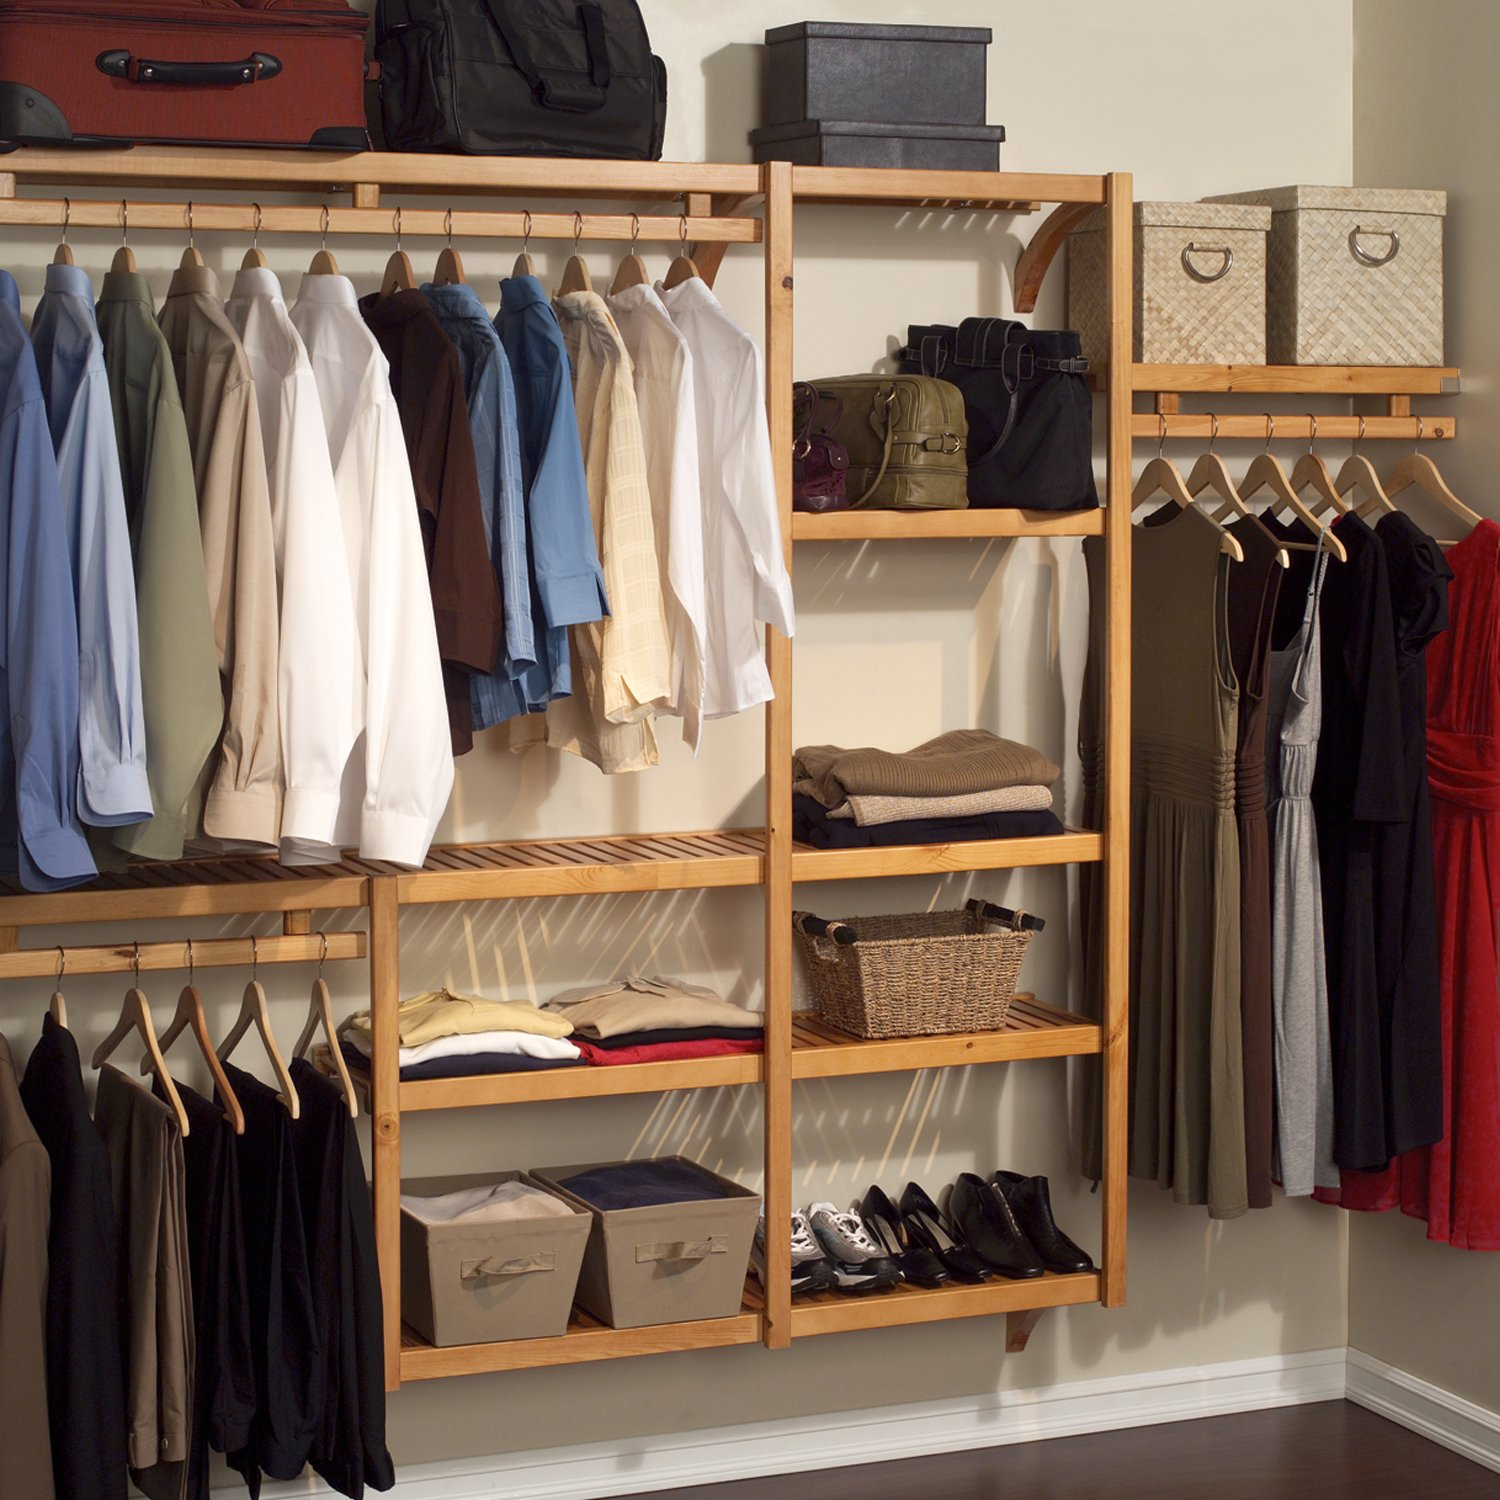 systems home made best ideas white closet astonishing charming ikea with organizers inspirations design in elegant wood storage pics drawers bedroom of and